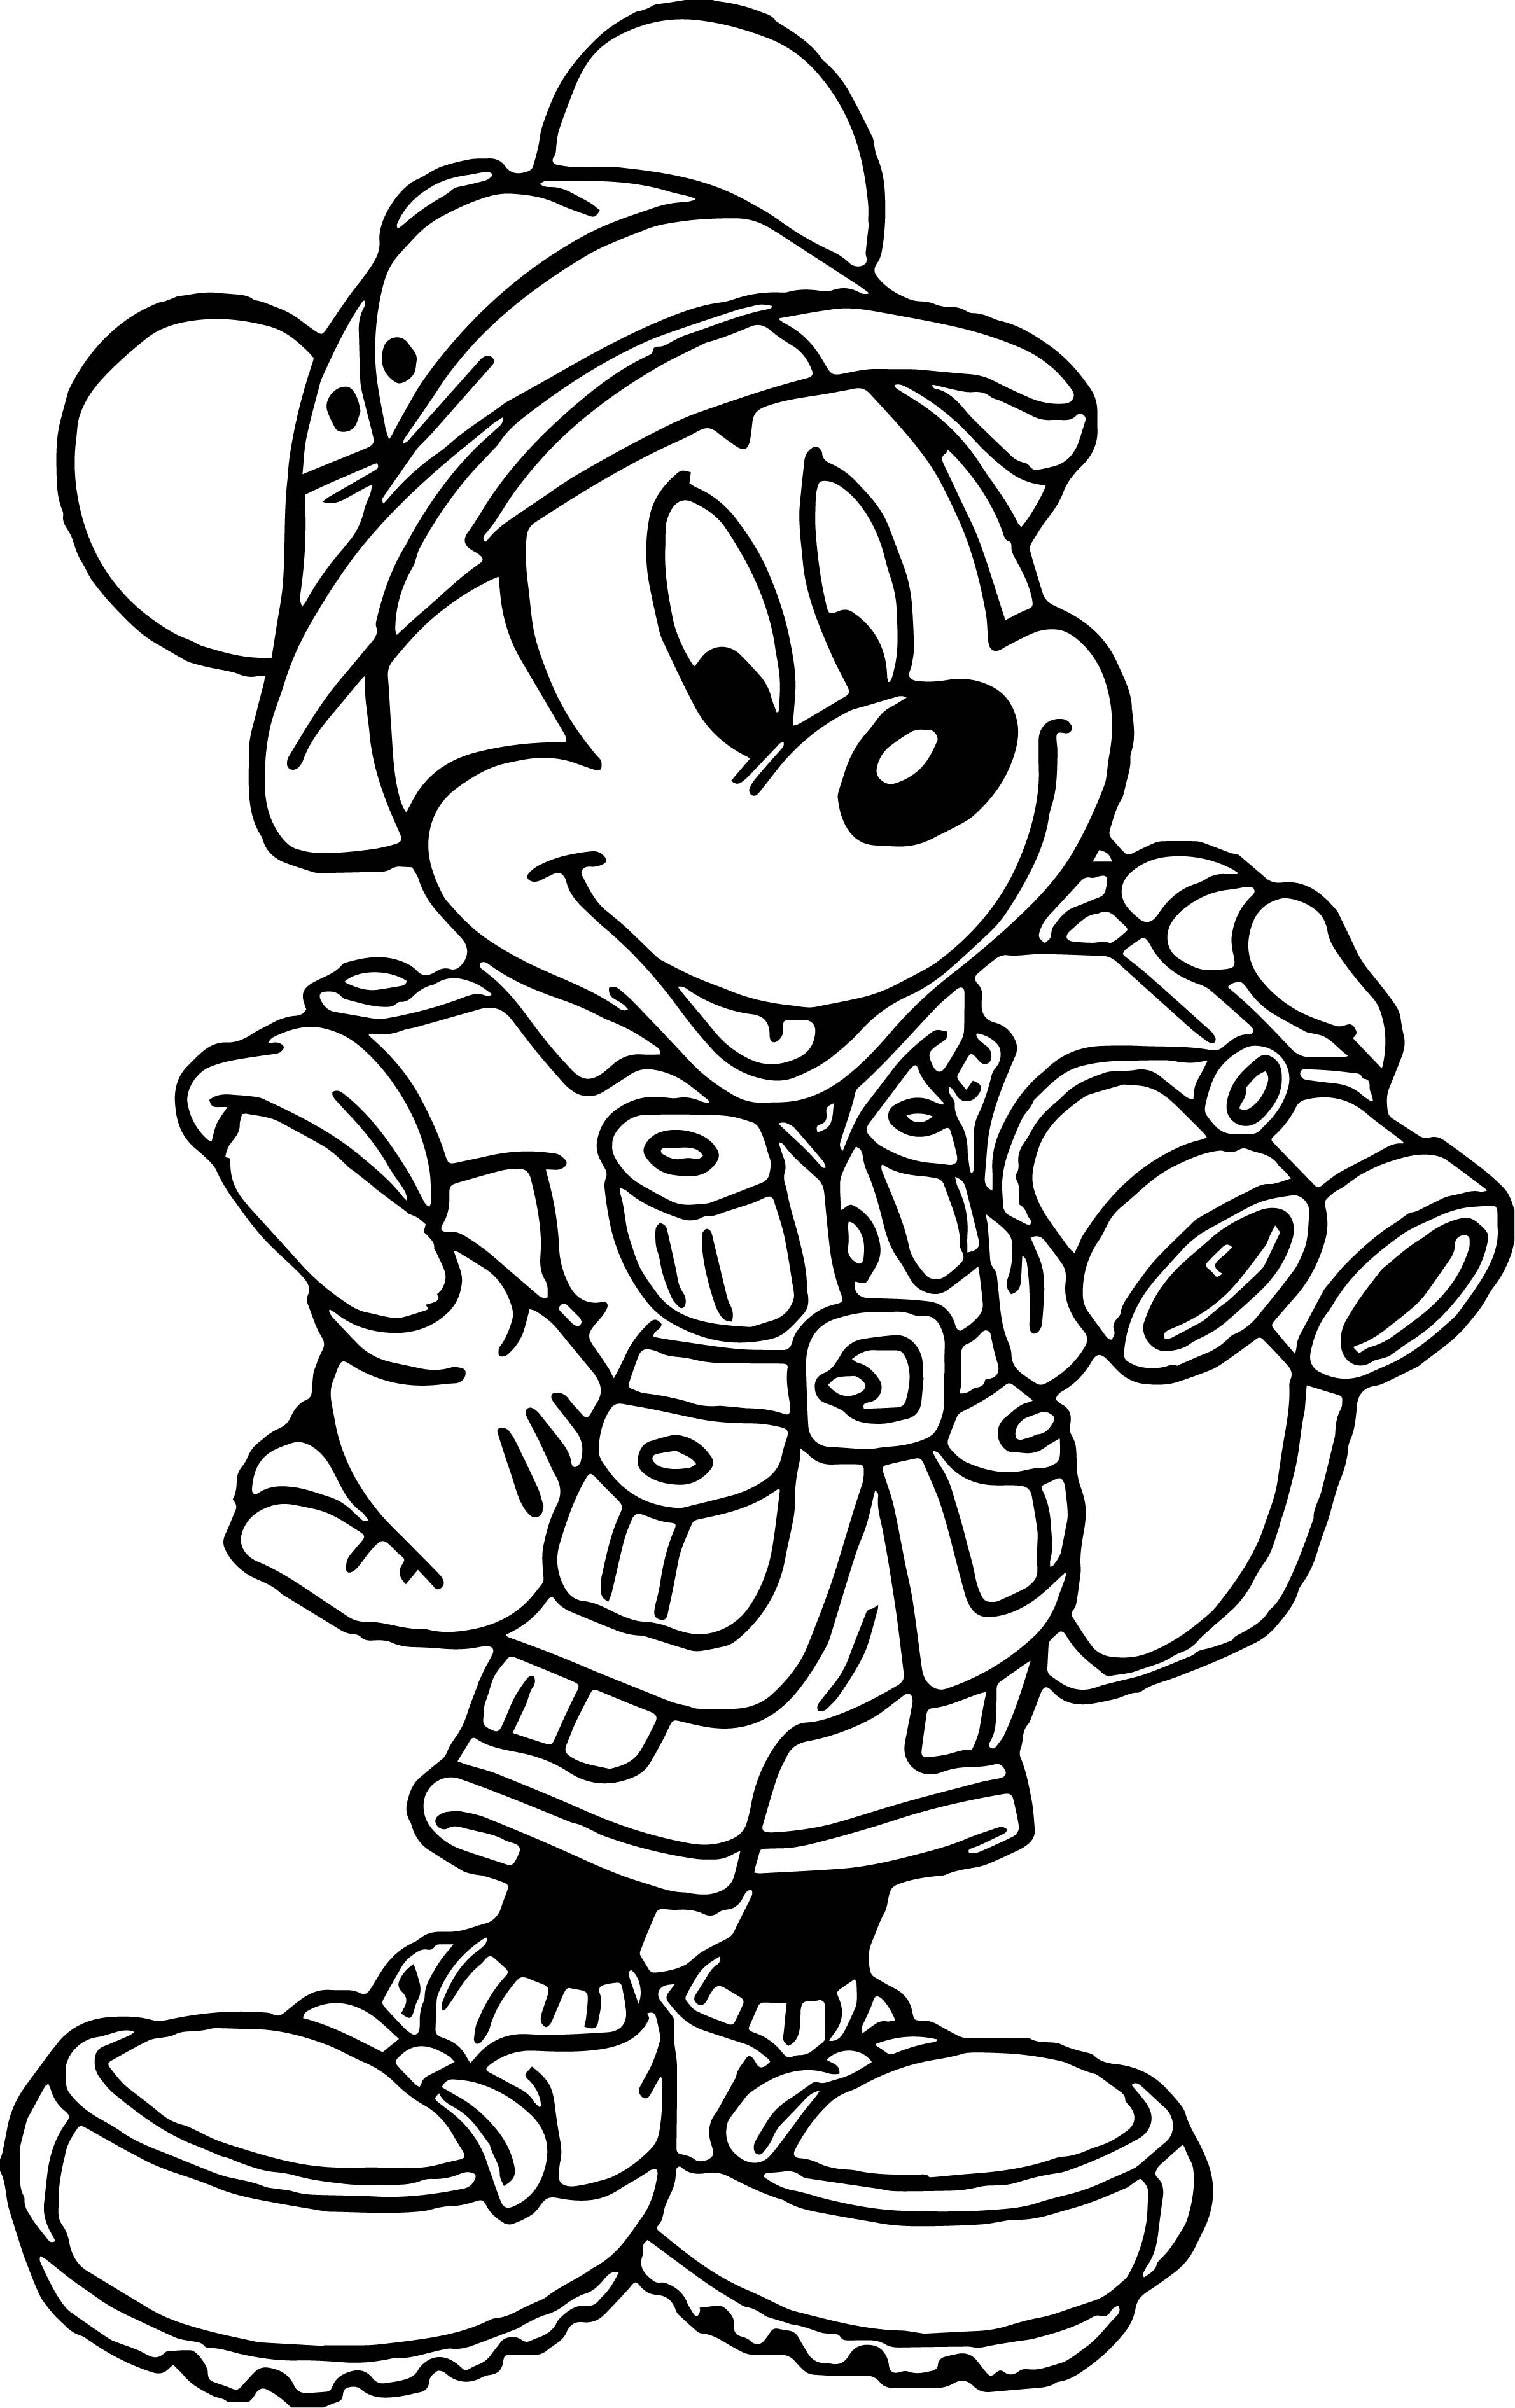 if you give a mouse a cookie coloring pages - if you give a mouse a cookie coloring pages sketch templates